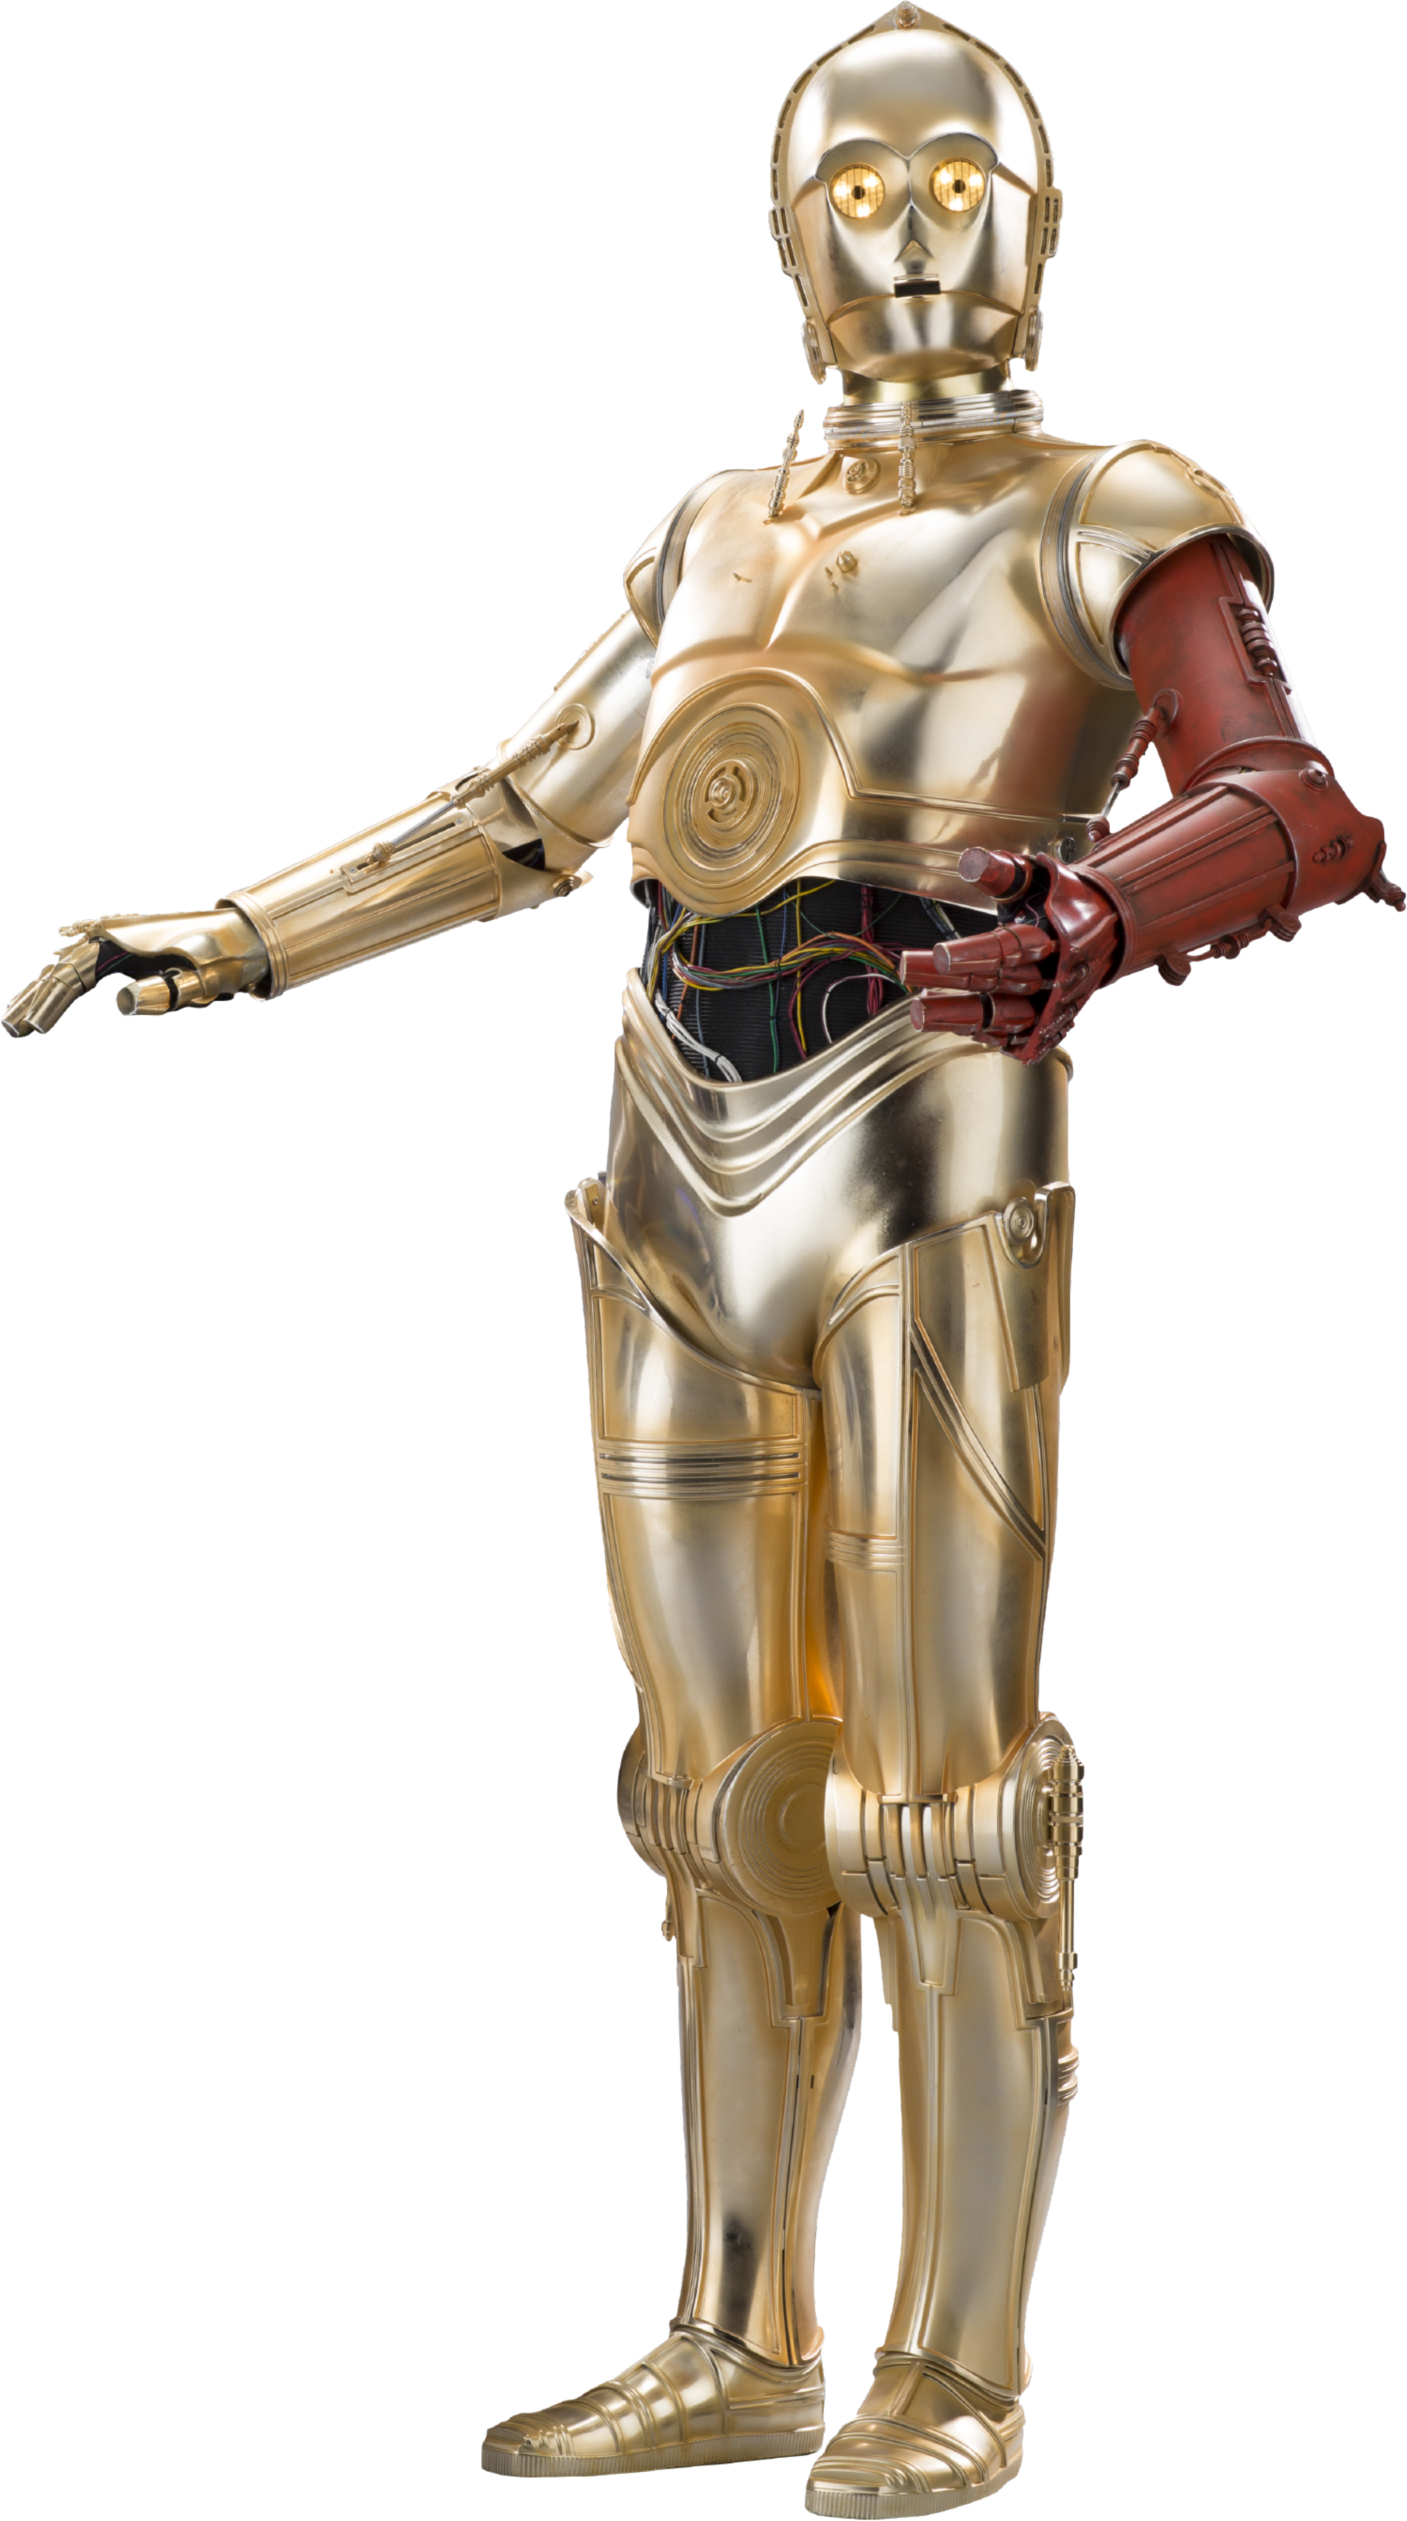 c 3po star wars ep7 the force awakens characters cut out with transparent background 7 milners. Black Bedroom Furniture Sets. Home Design Ideas